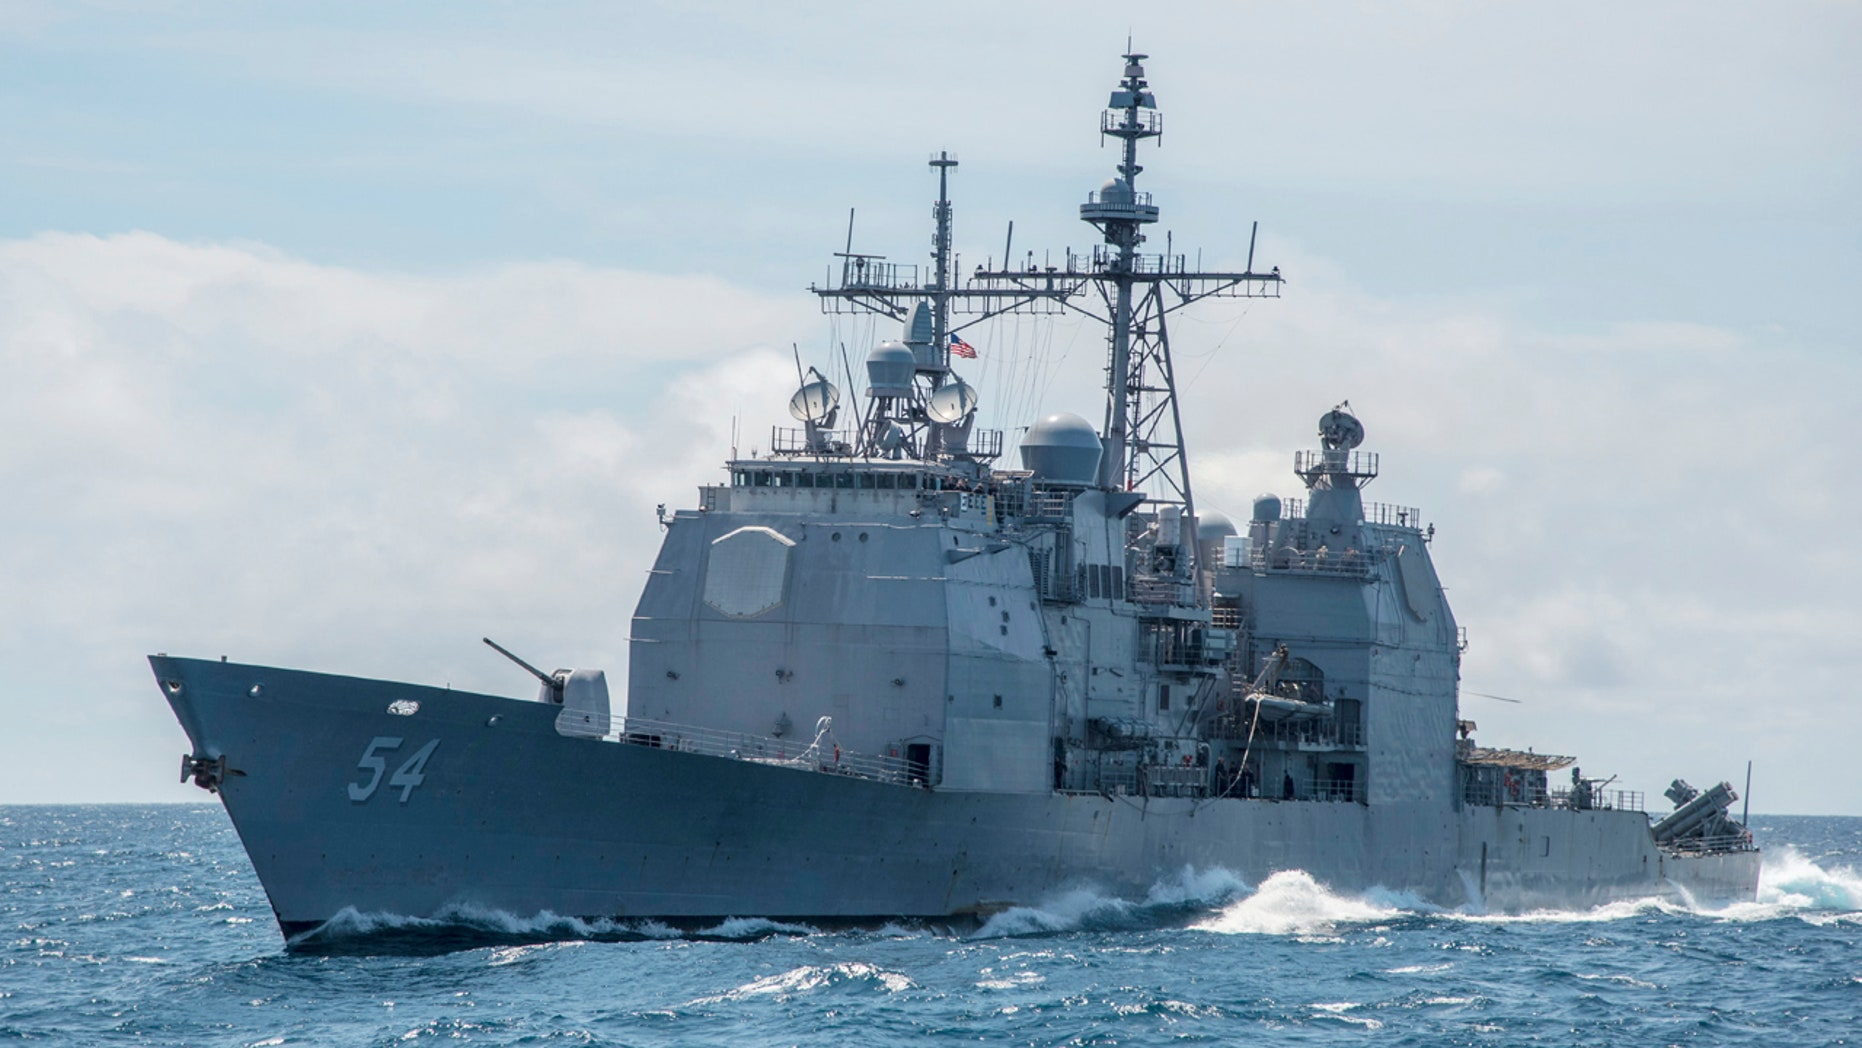 This Mar. 6, 2016, file photo provided by the U.S. Navy, shows the Ticonderoga-class guided-missile cruiser USS Antietam (CG 54) sails in the South China Sea.